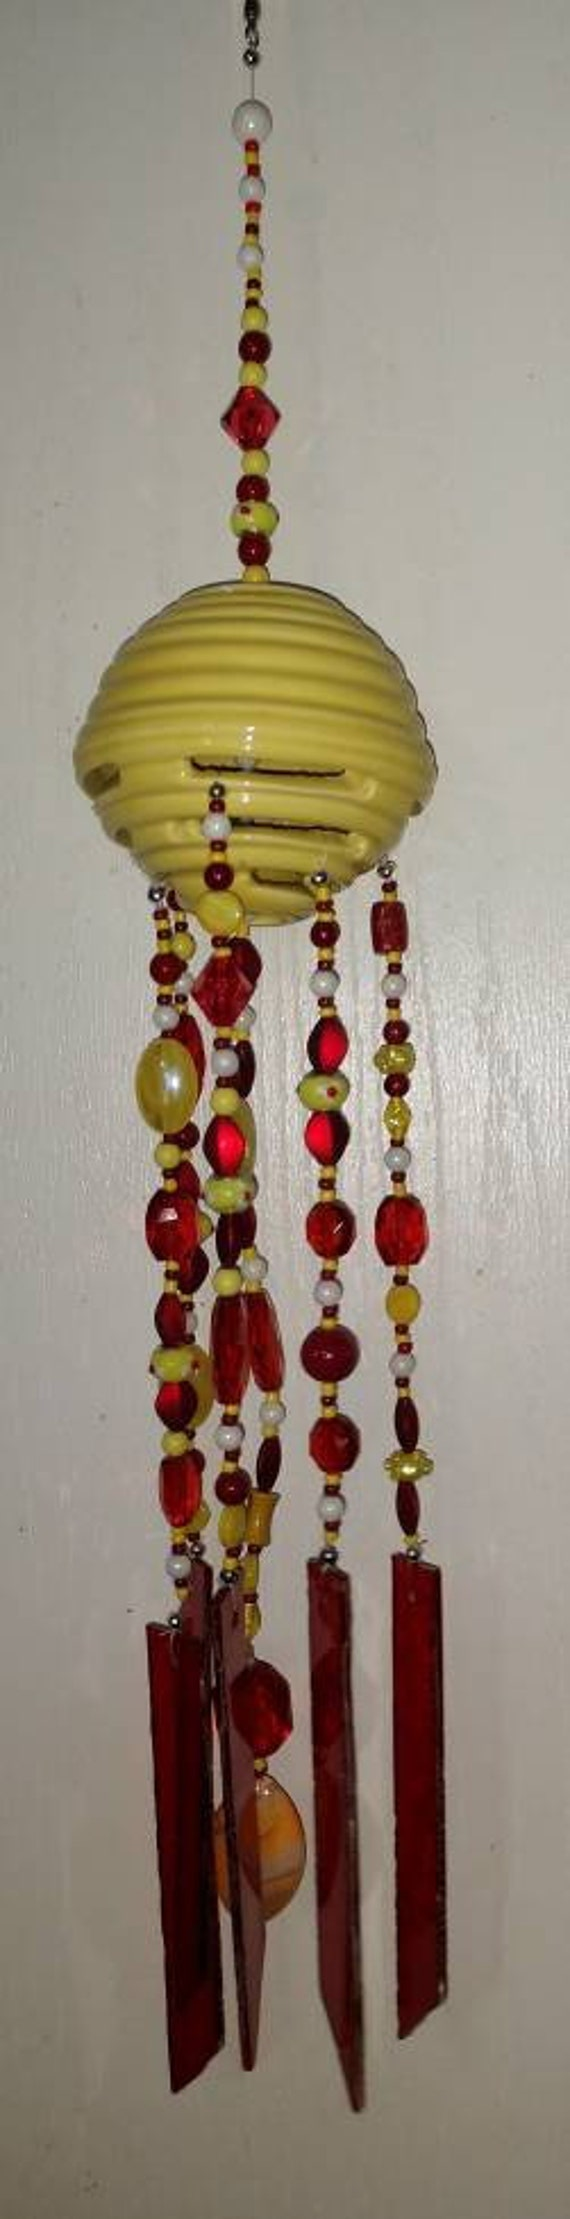 Beautiful Red and Yellow Stained Glass Wind Chime